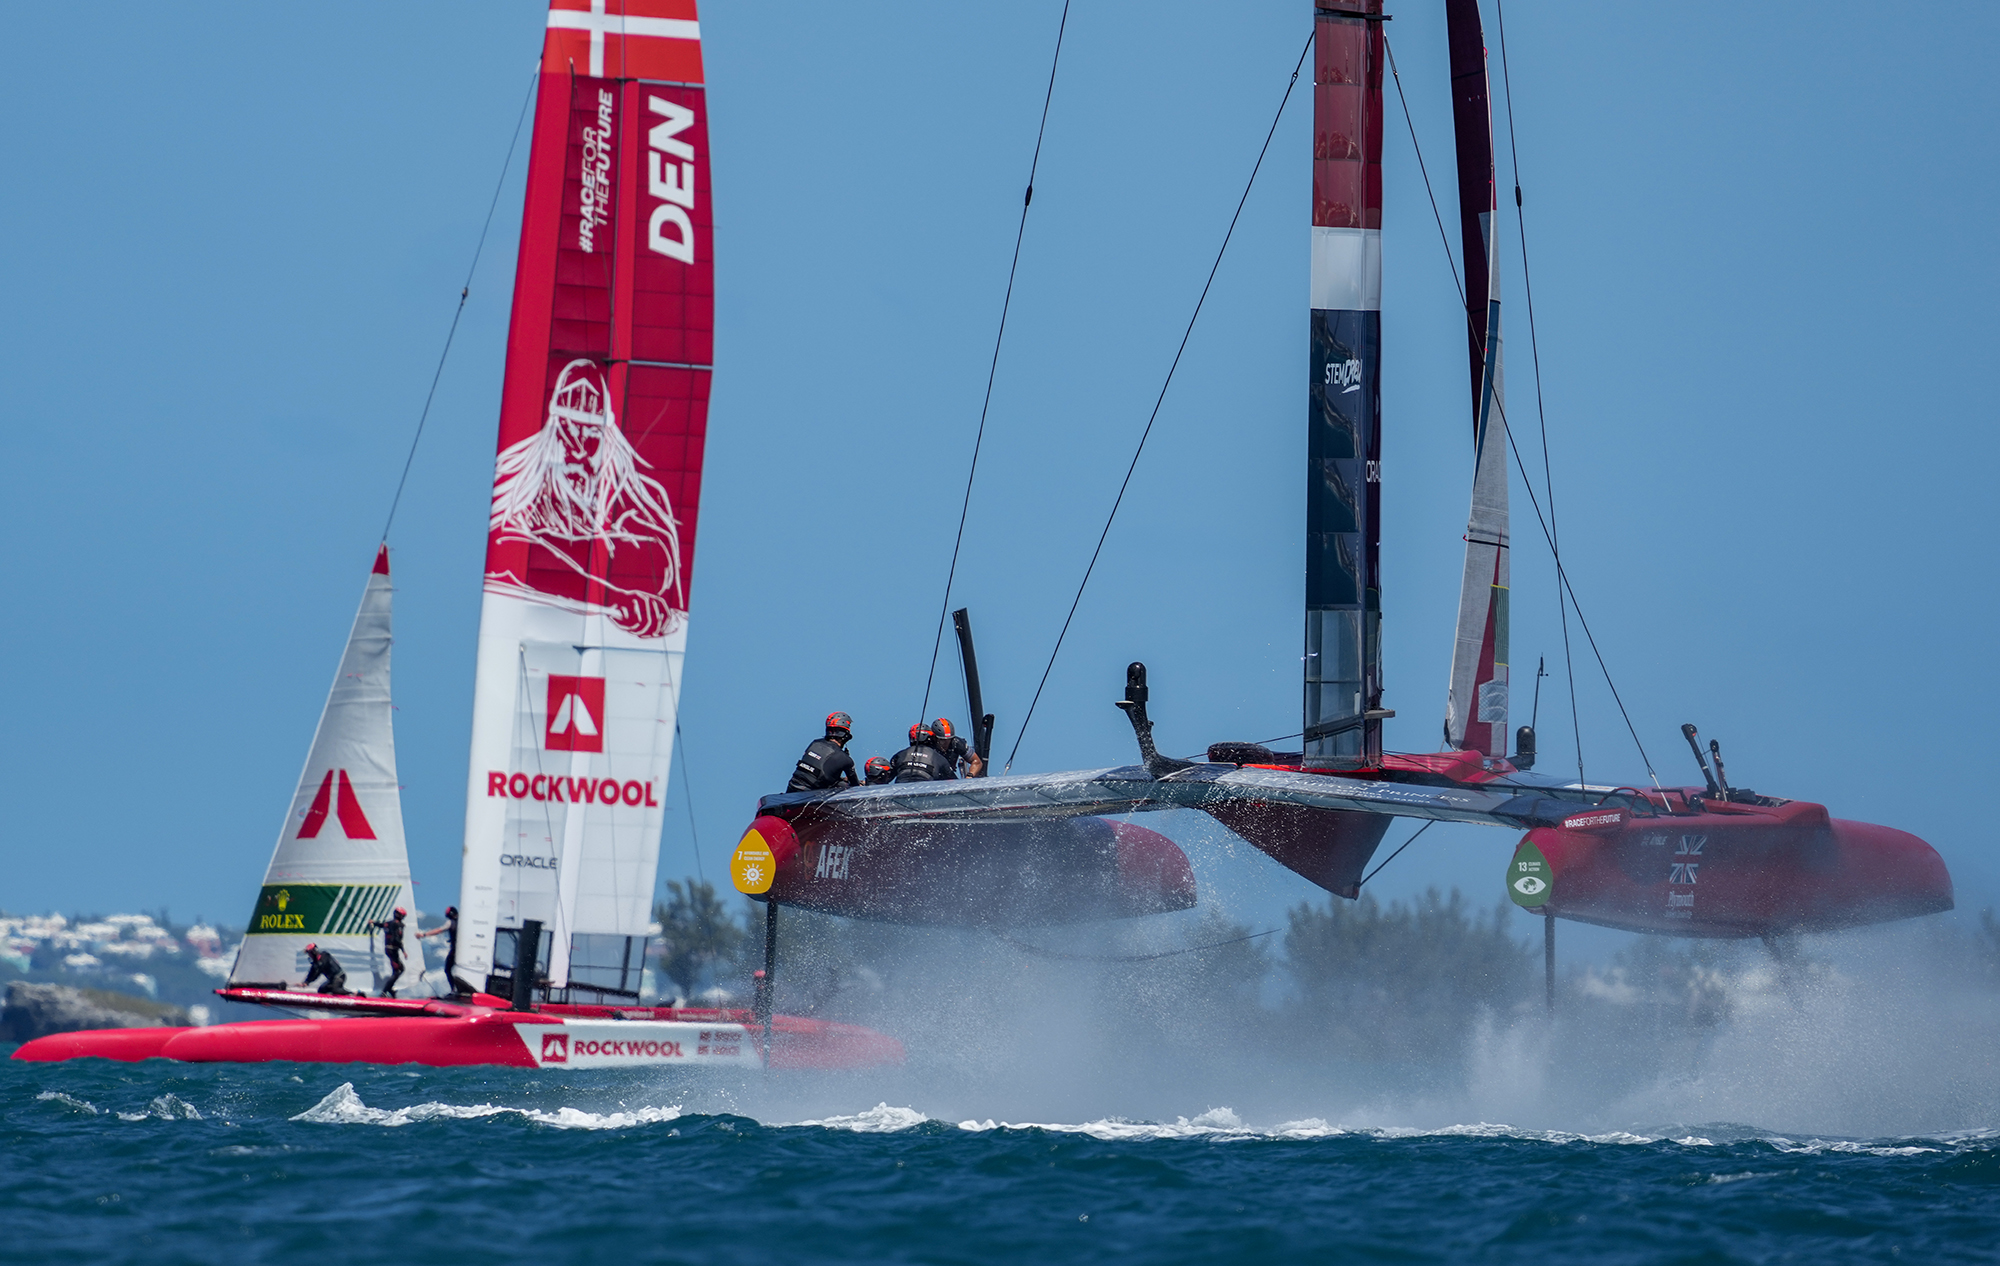 SailGP F50 catamarans foiling out of the water